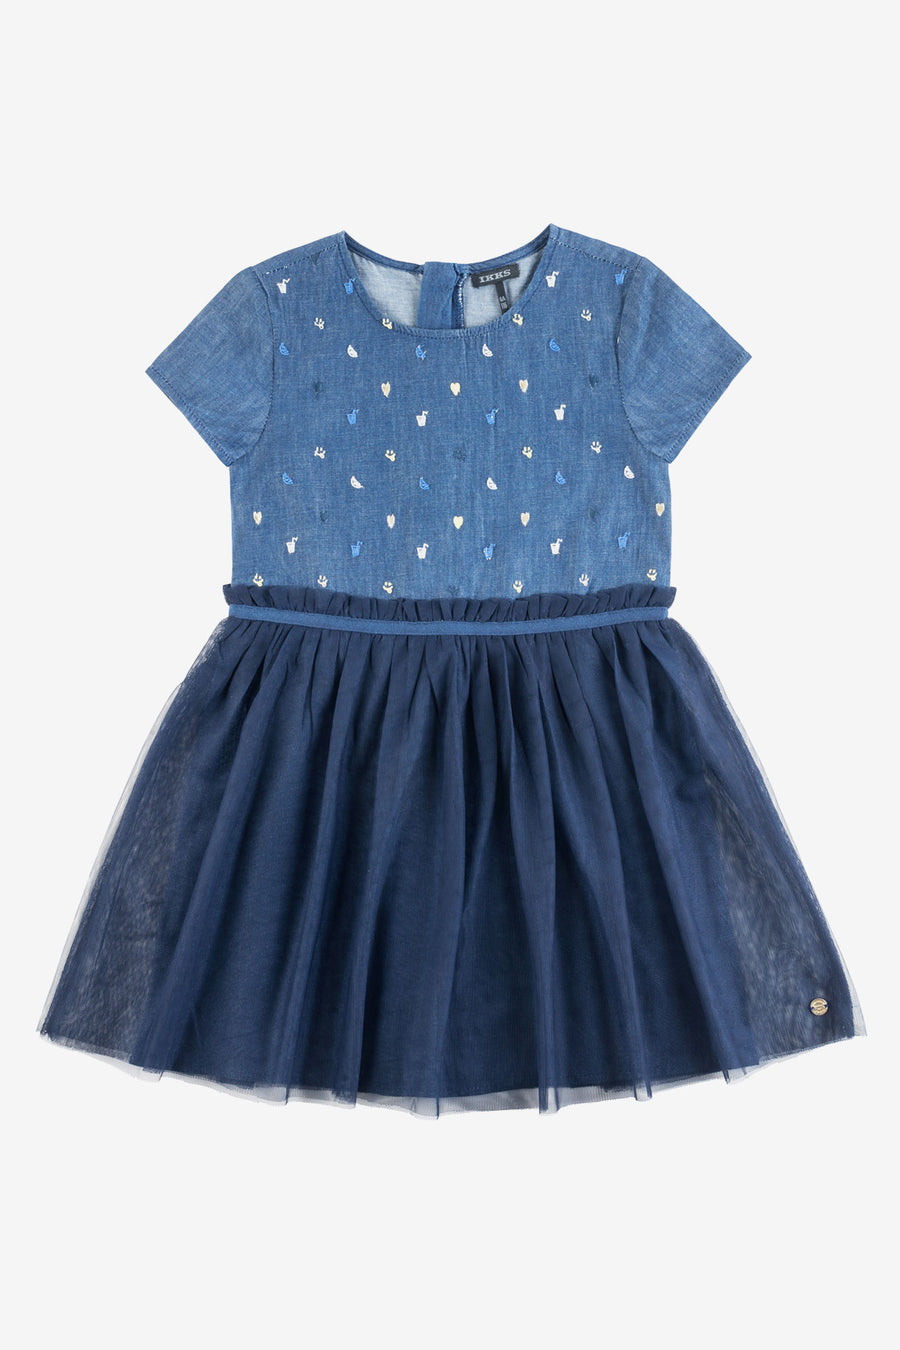 IKKS Chambray and Tulle Dress